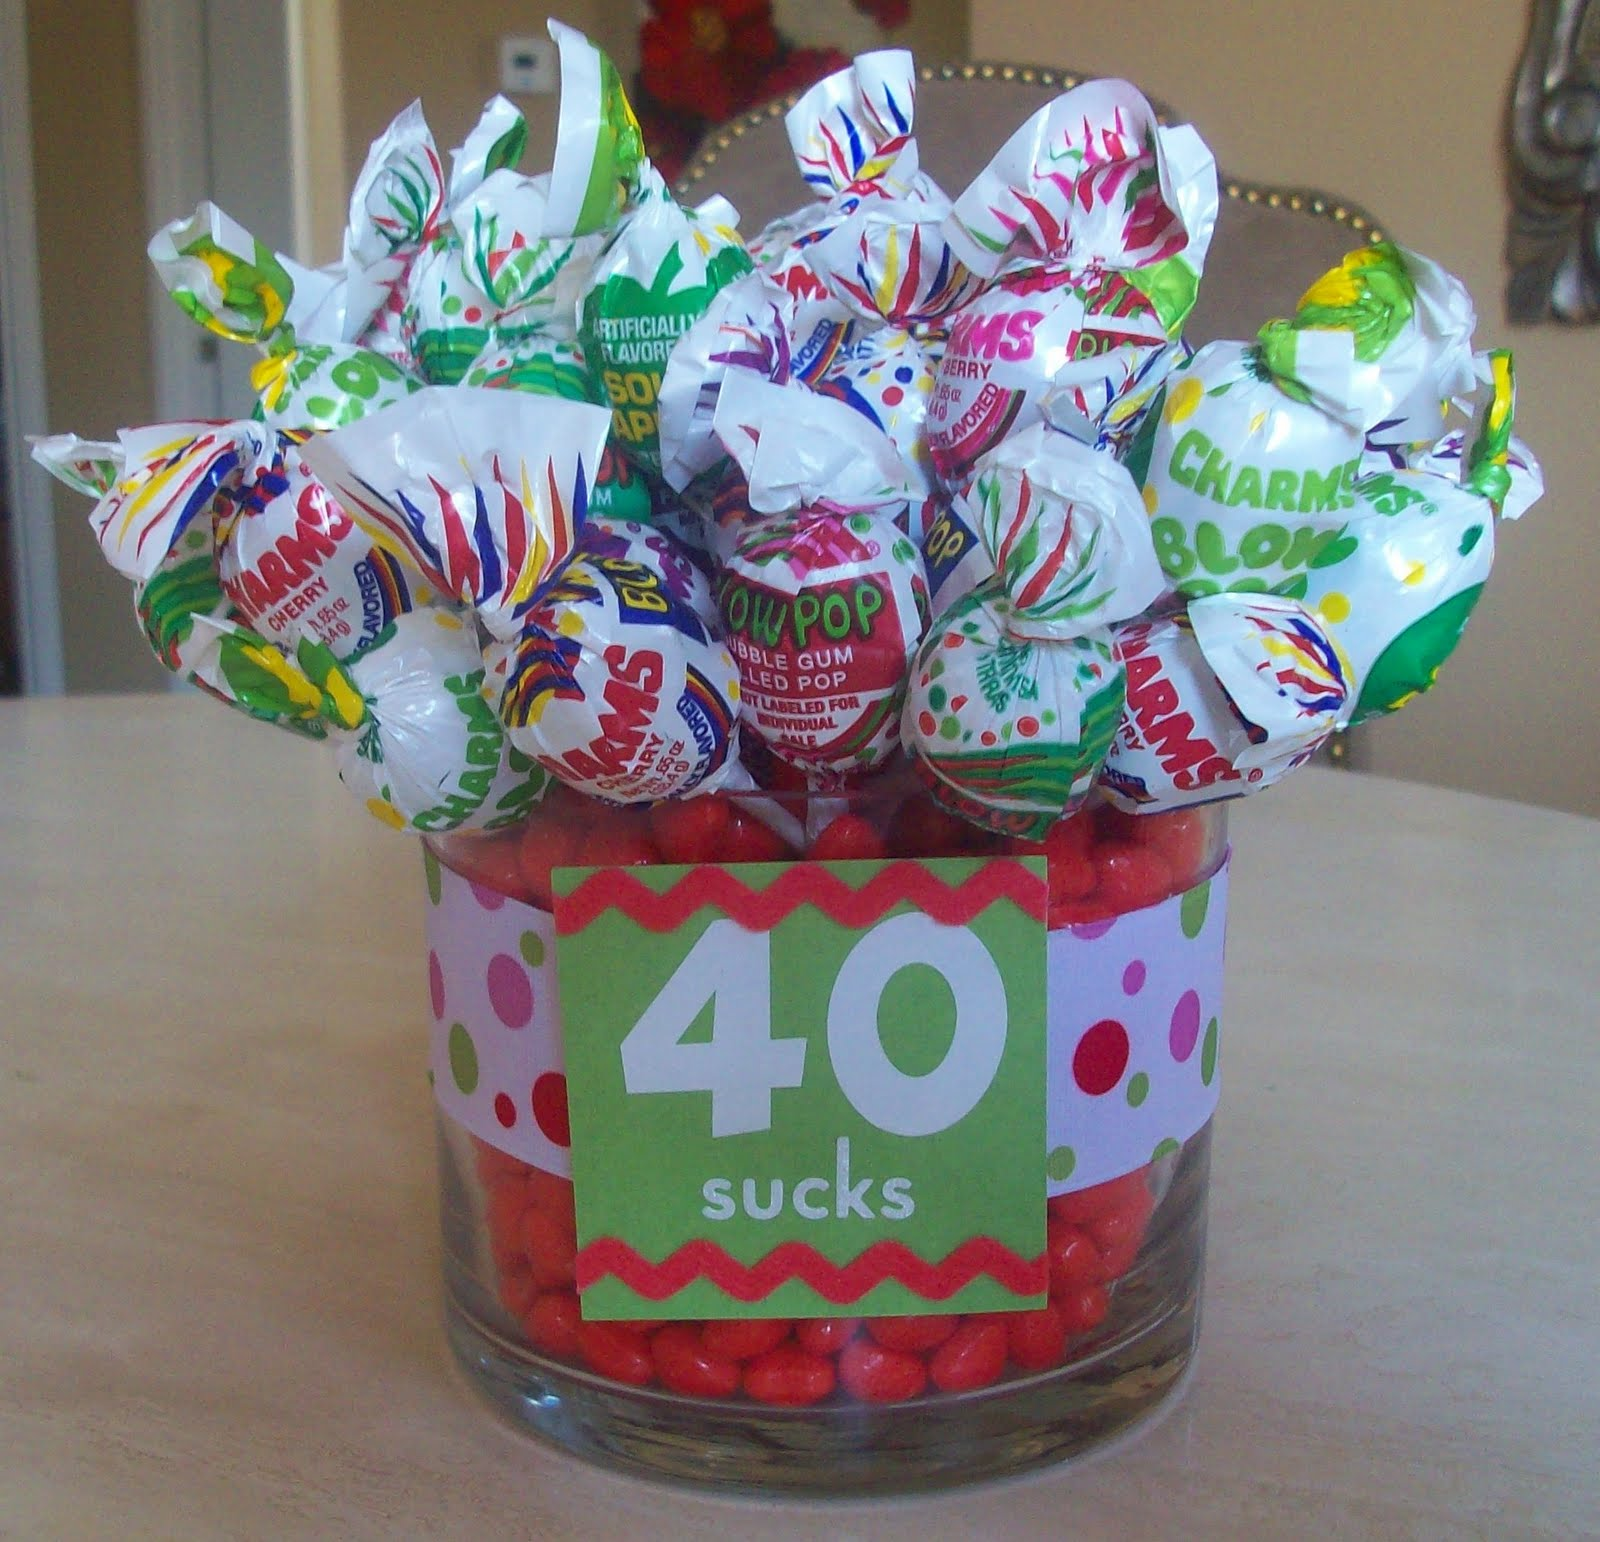 Funny 40th Birthday Gifts Presents For: Susan Crabtree: 40 Sucks